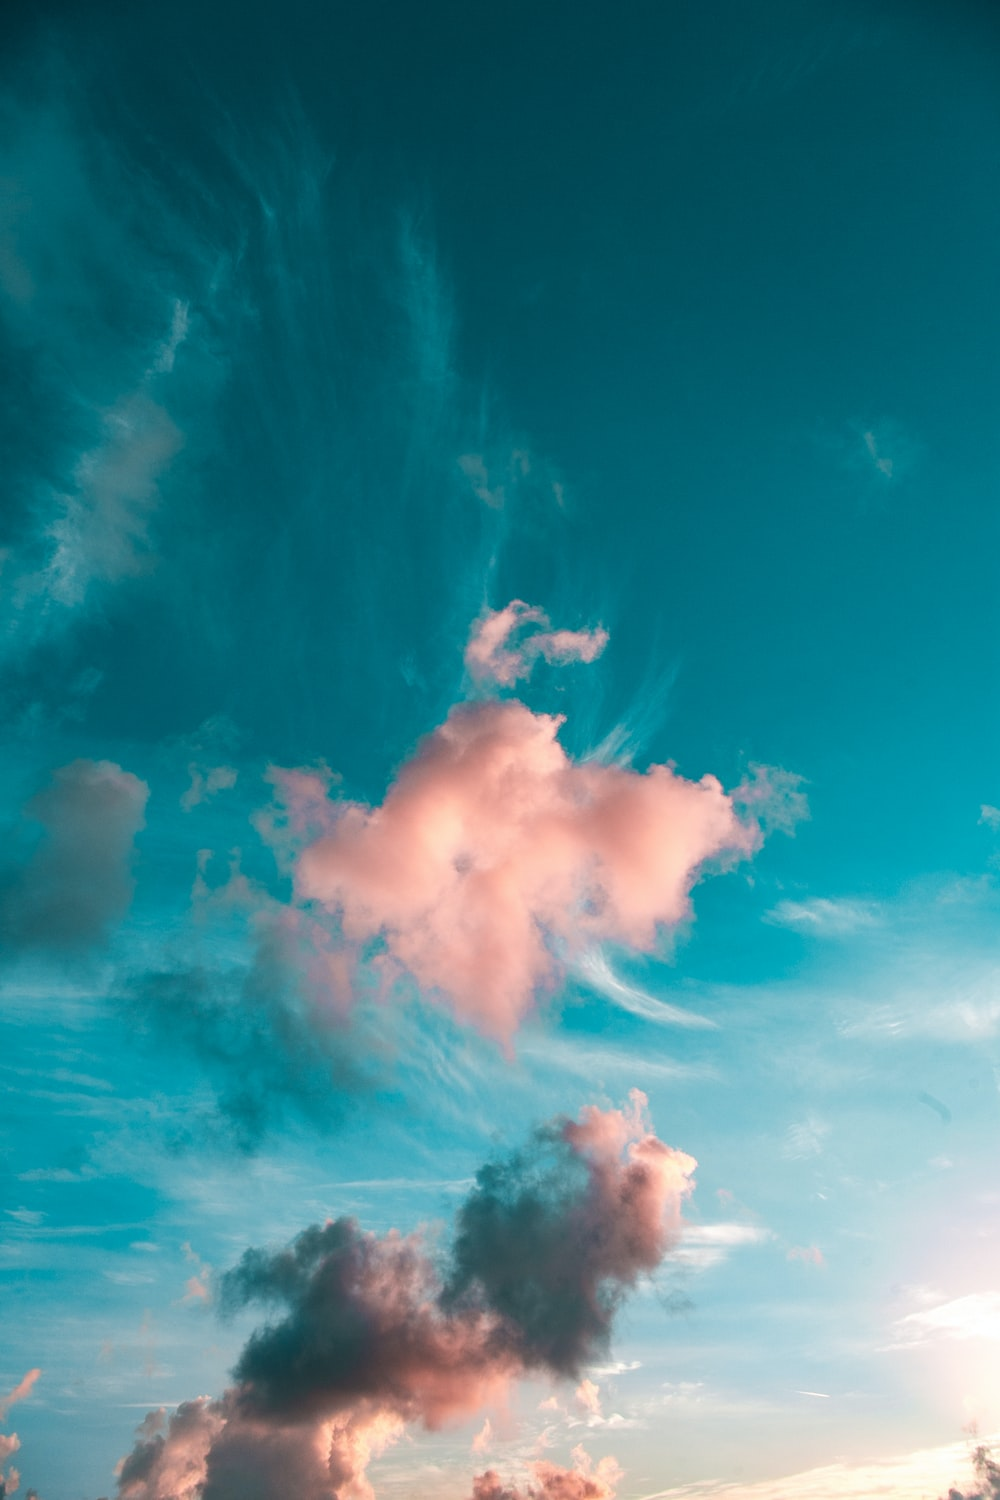 Aesthetic Cloud Desktop Wallpaper Hd Allwallpaper